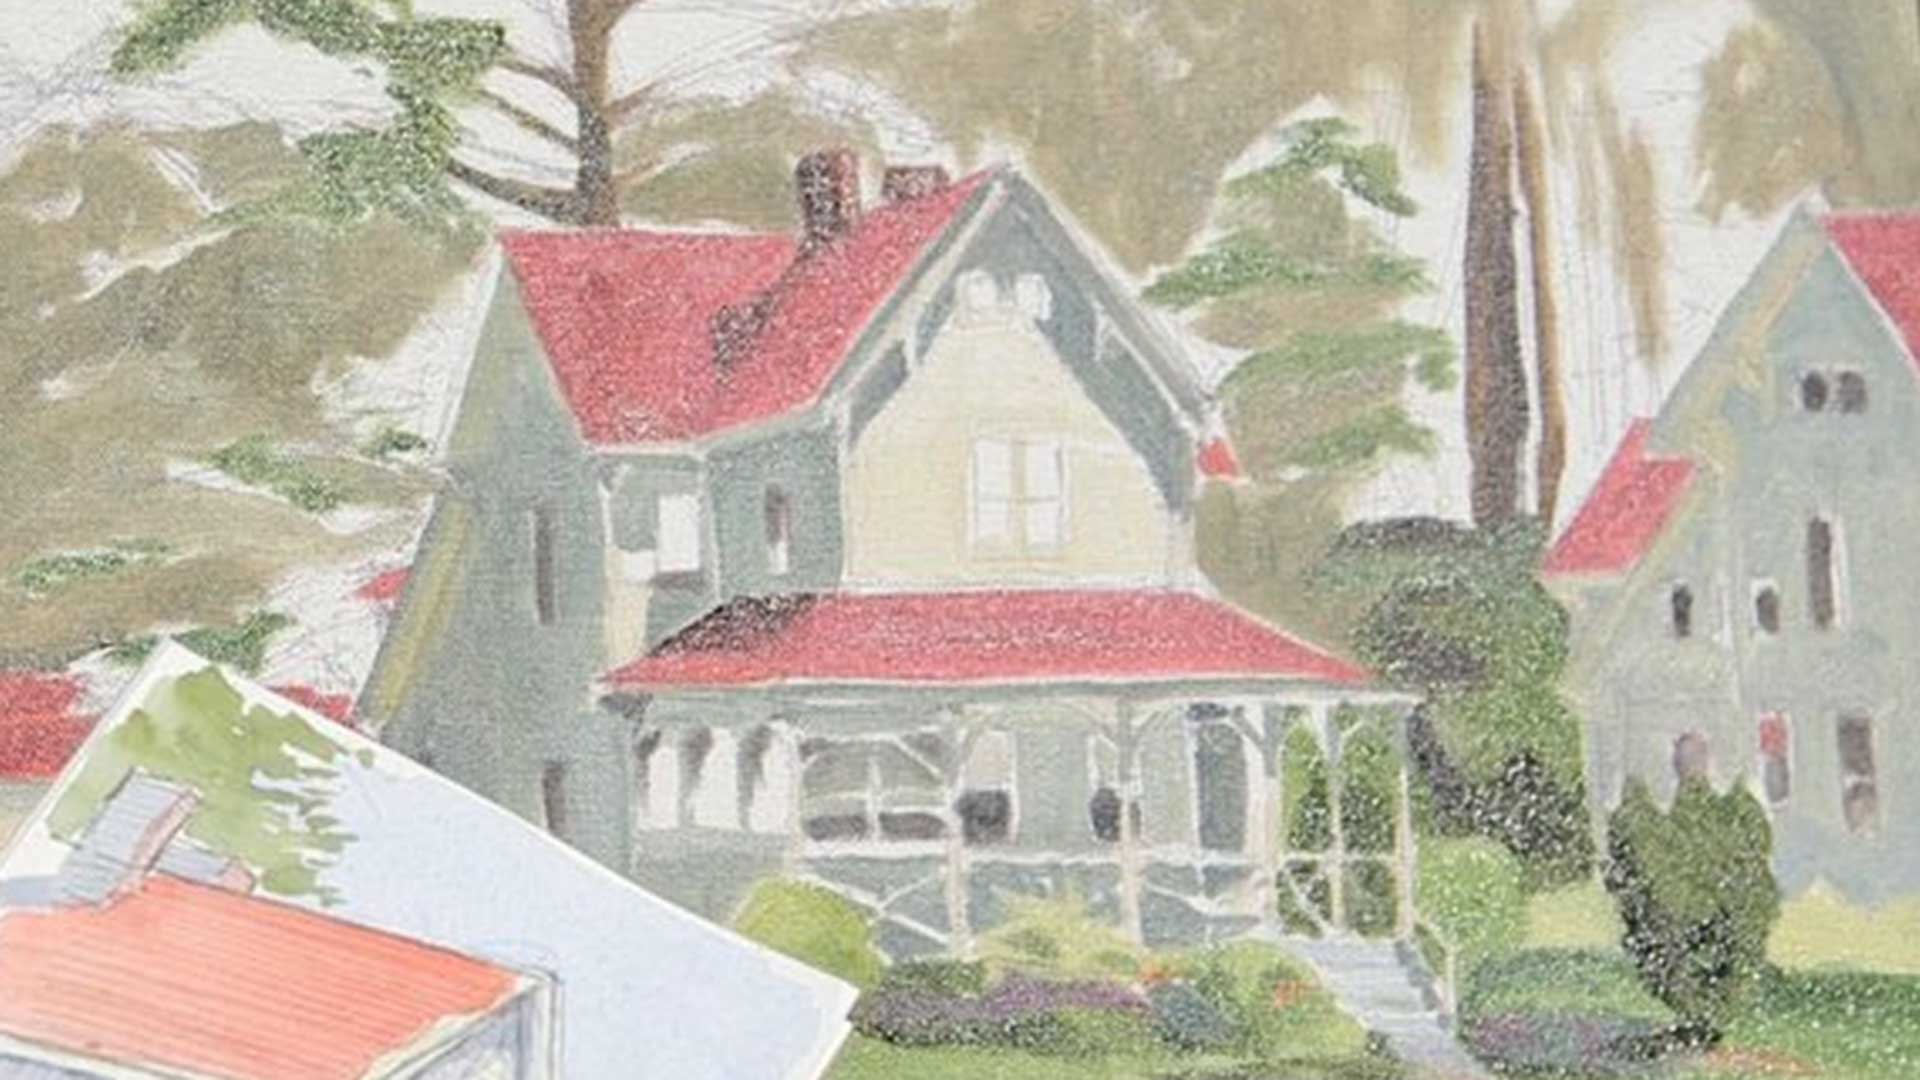 watercolor of house and trees